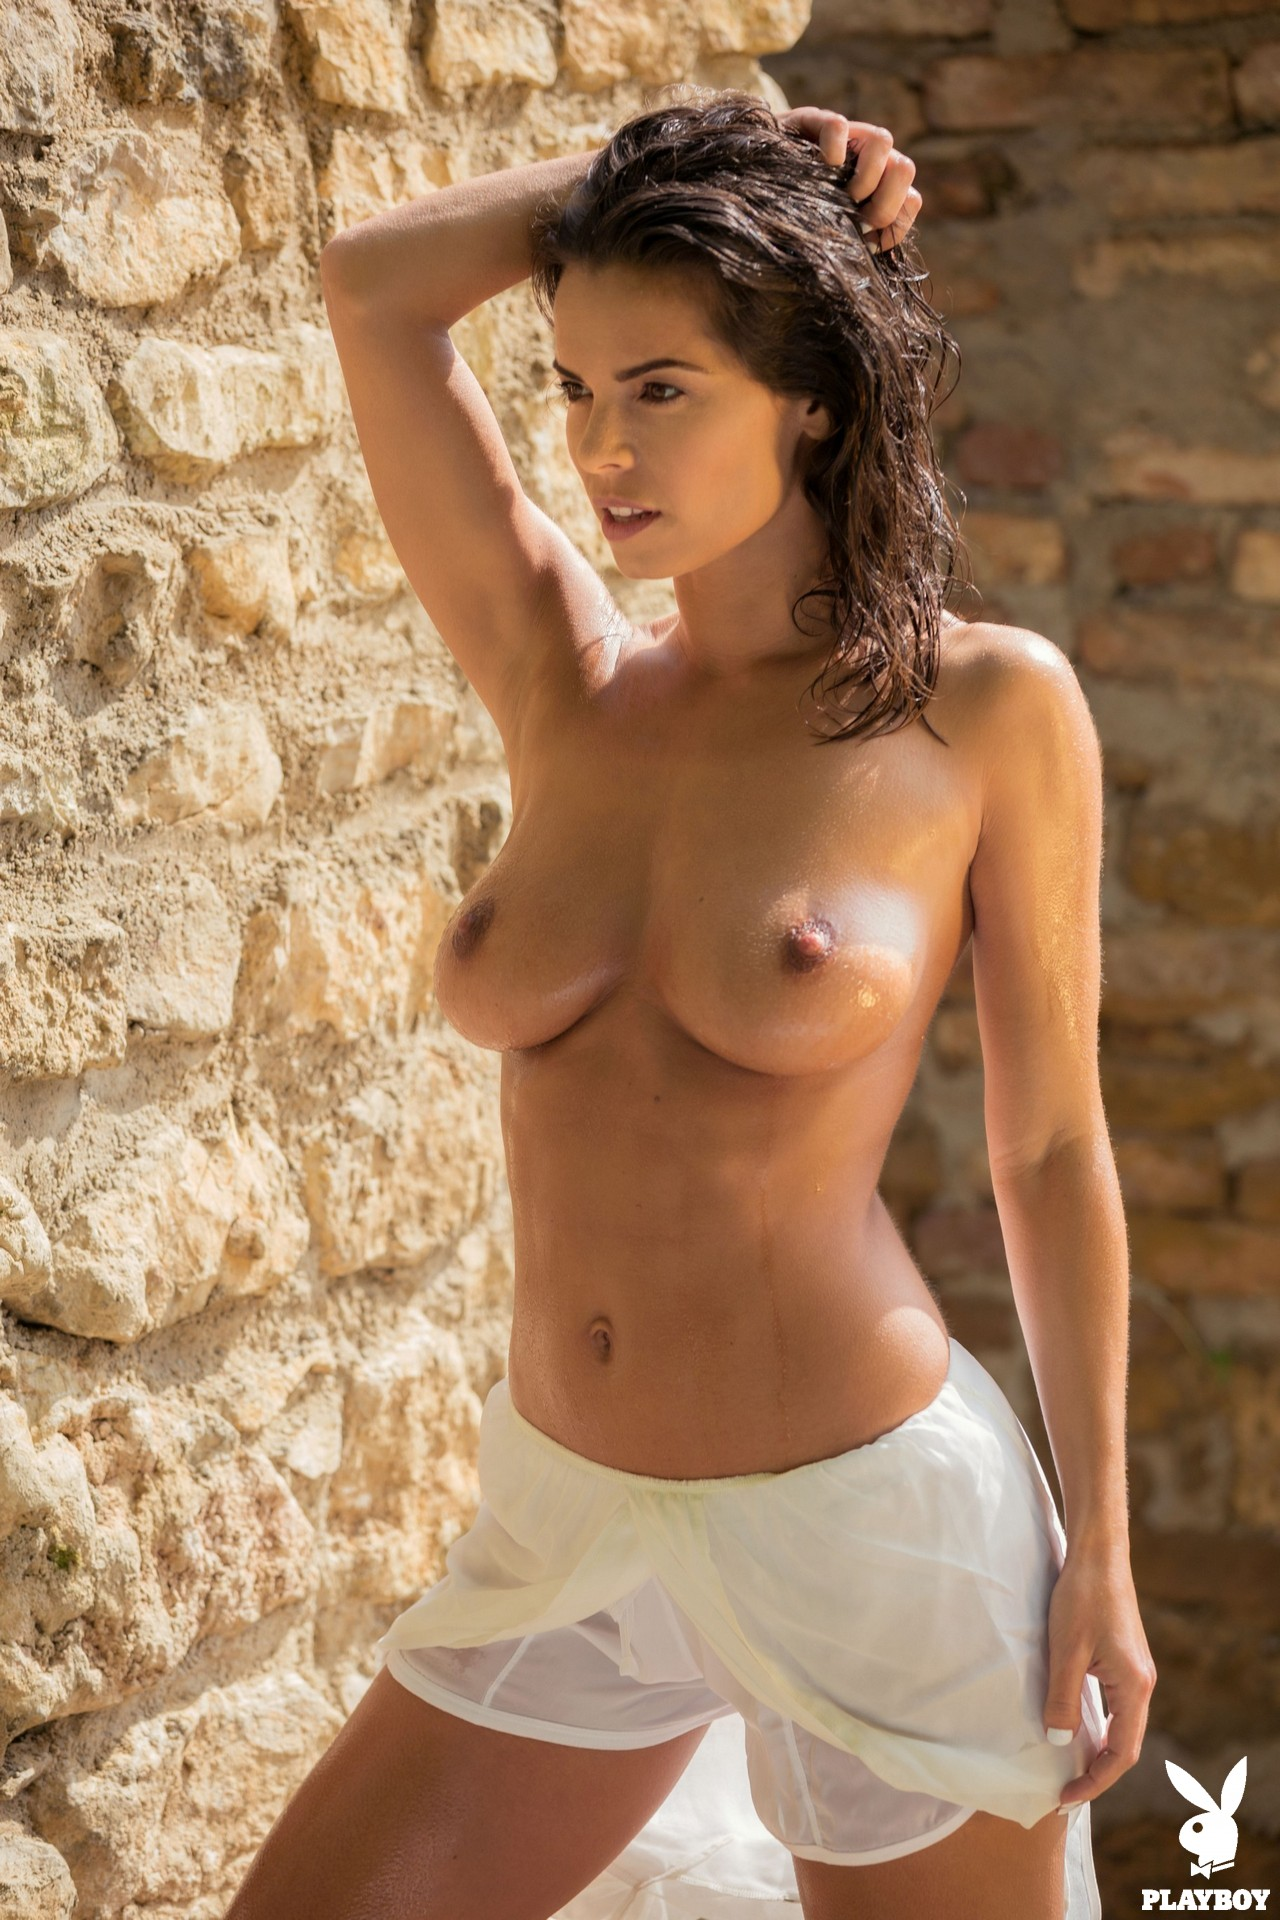 Natalie Costello in Sublime Shower - Playboy Plus 7